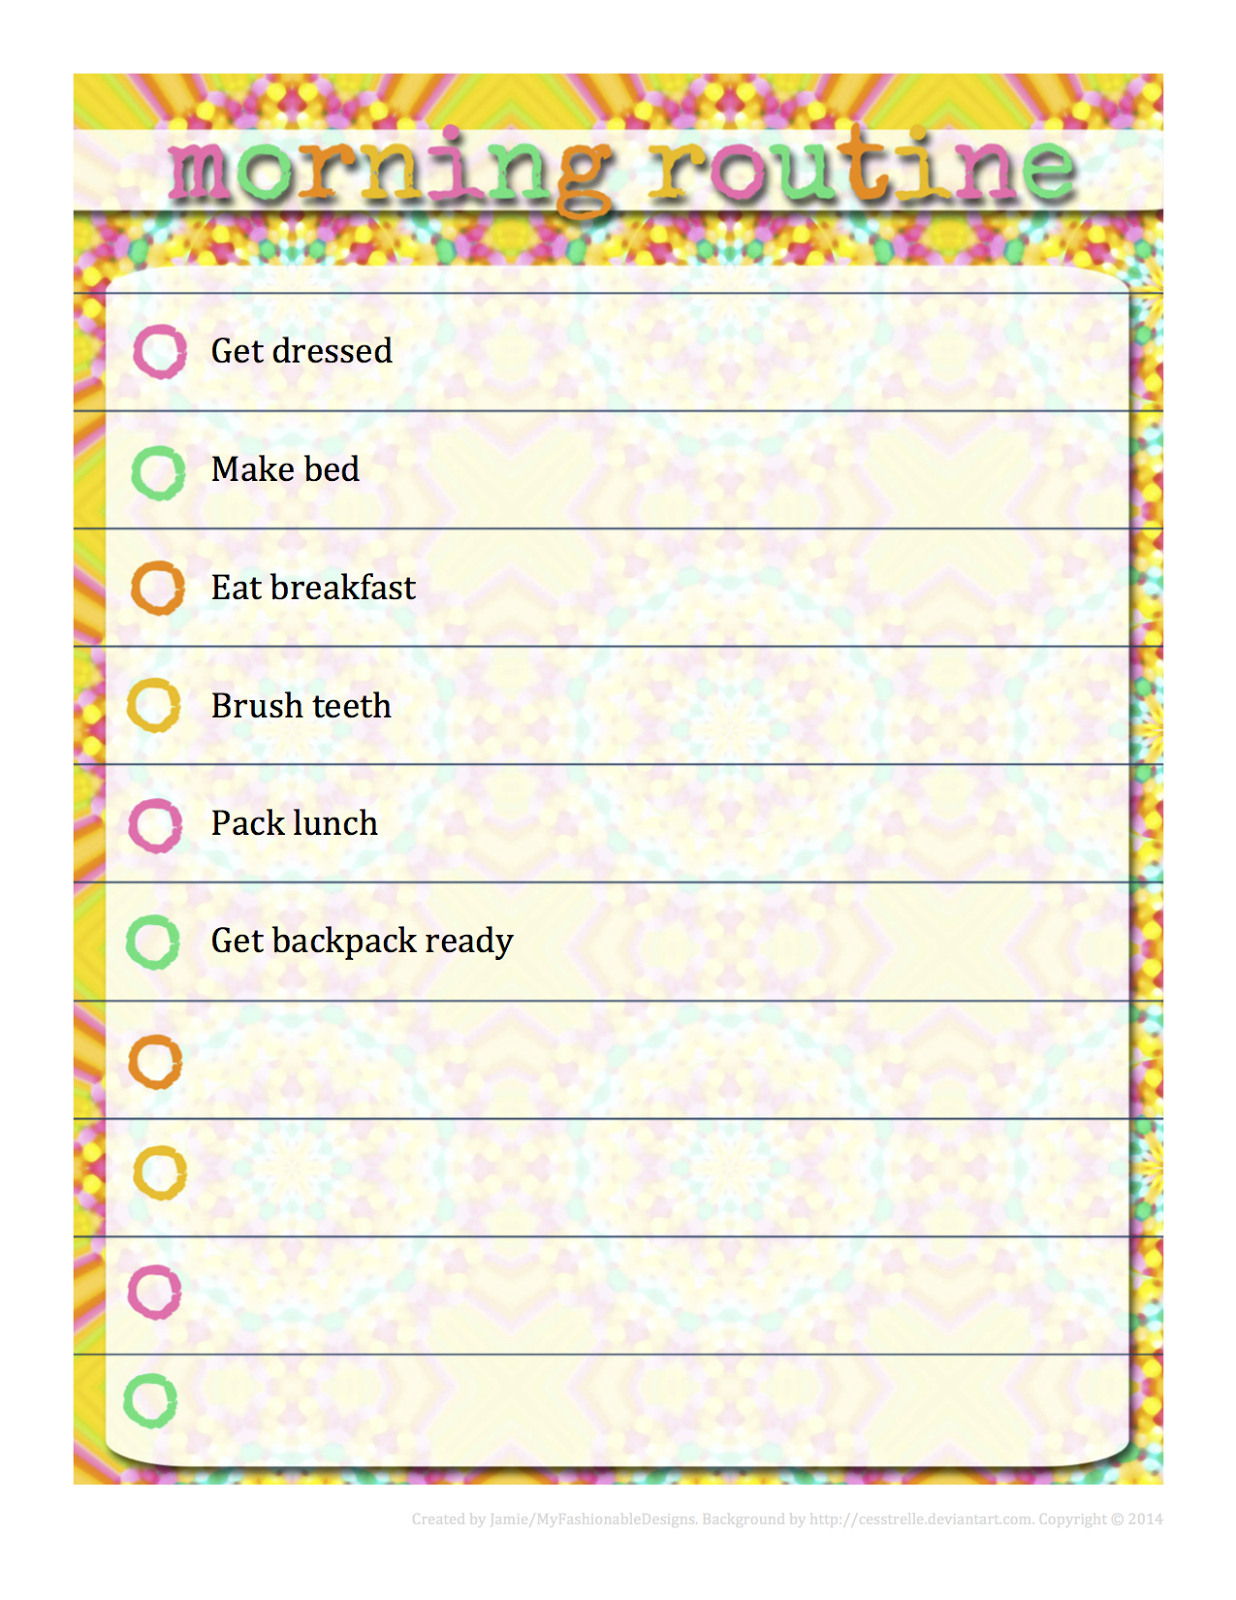 Morning Routine Chart - Free Download - Editable In Word!   Kids - Free Printable Morning Routine Chart